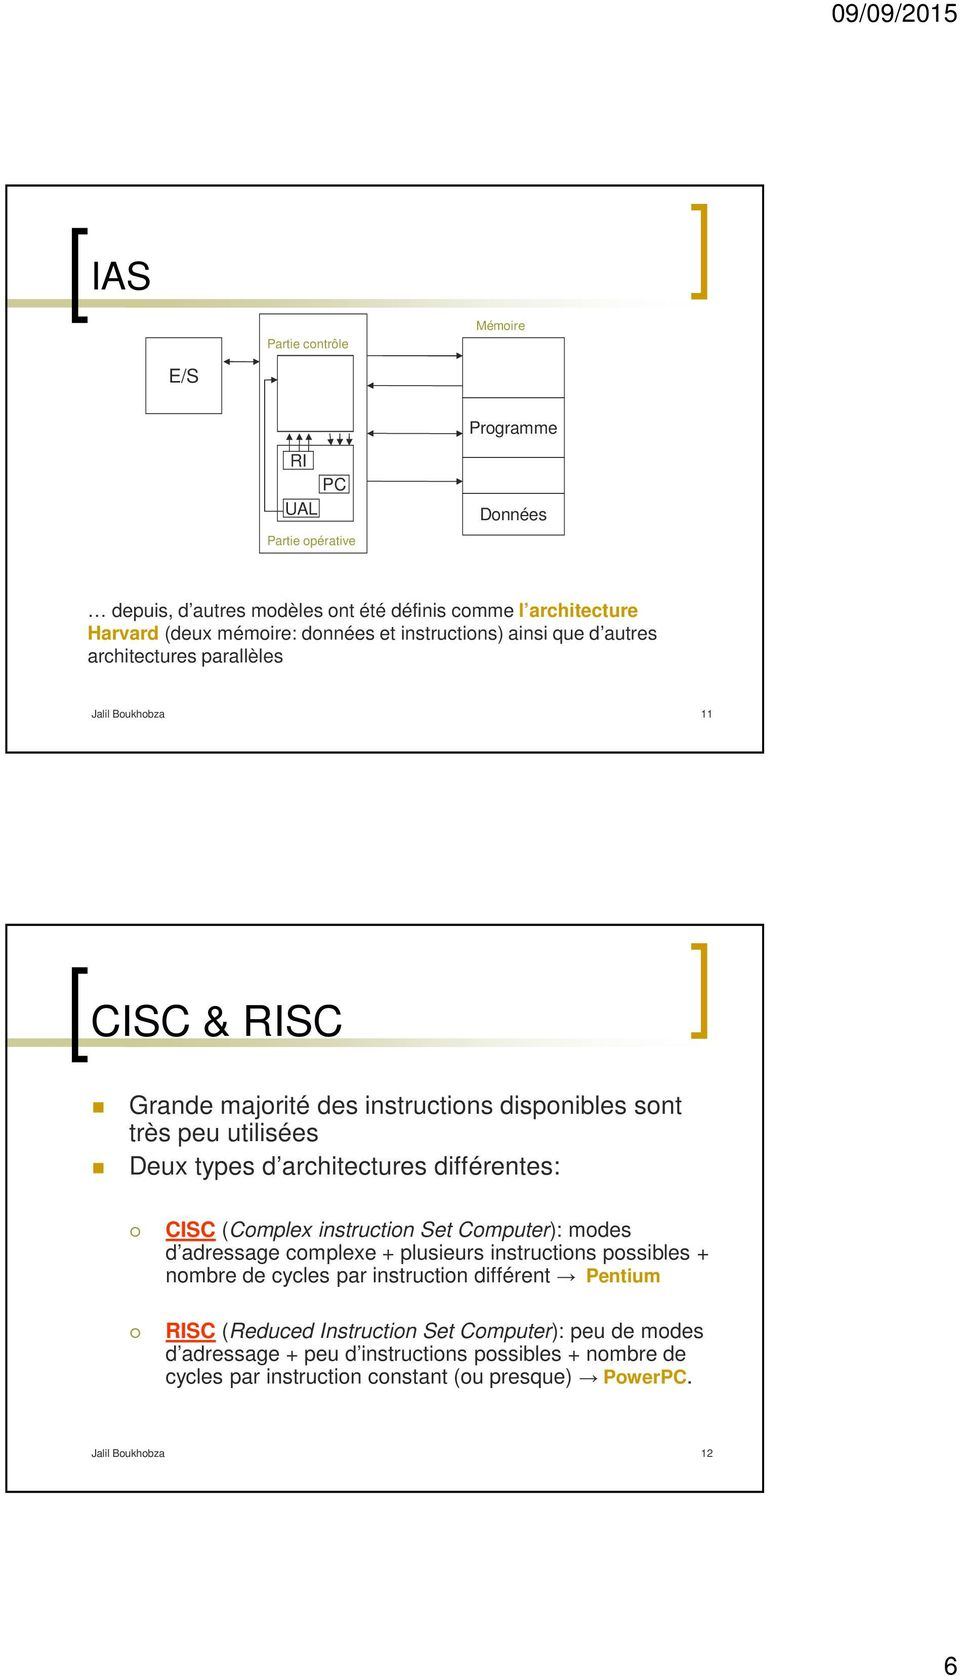 architectures différentes: CISC (Complex instruction Set Computer): modes d adressage complexe + plusieurs instructions possibles + nombre de cycles par instruction différent